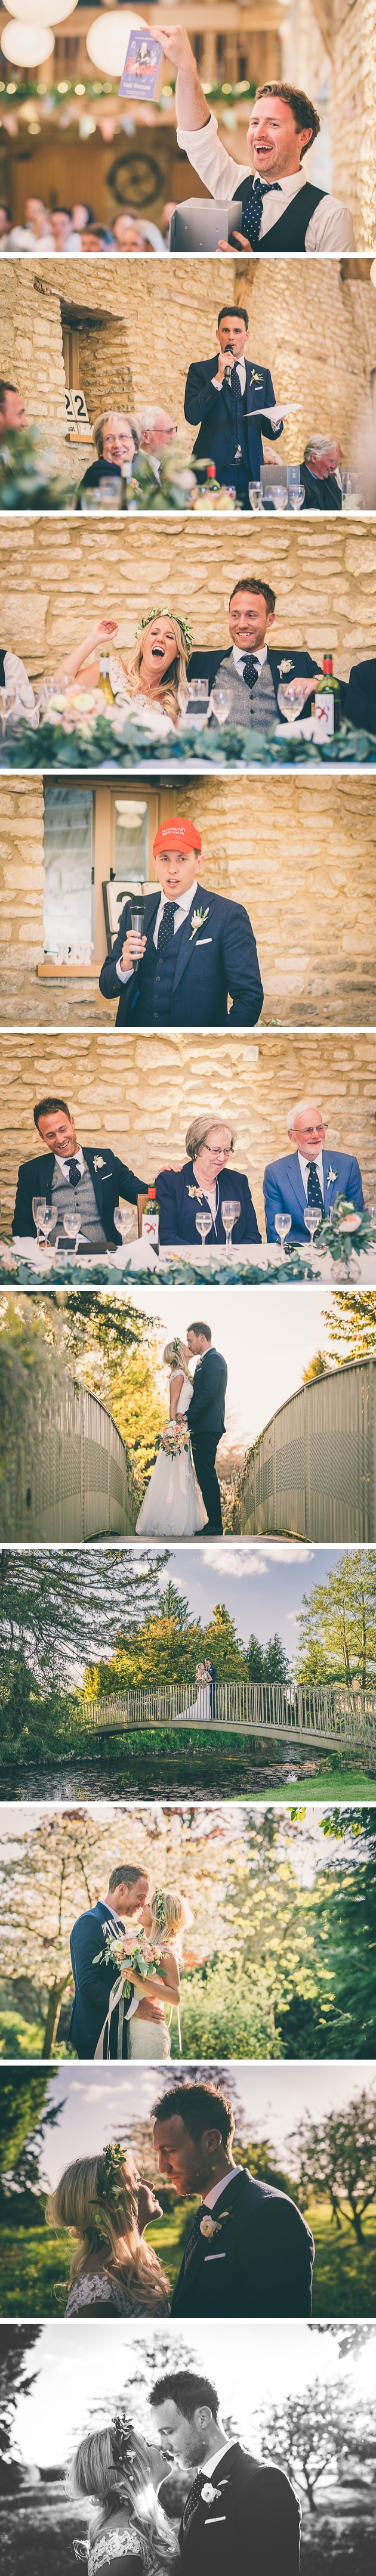 Funny speeches at weddings